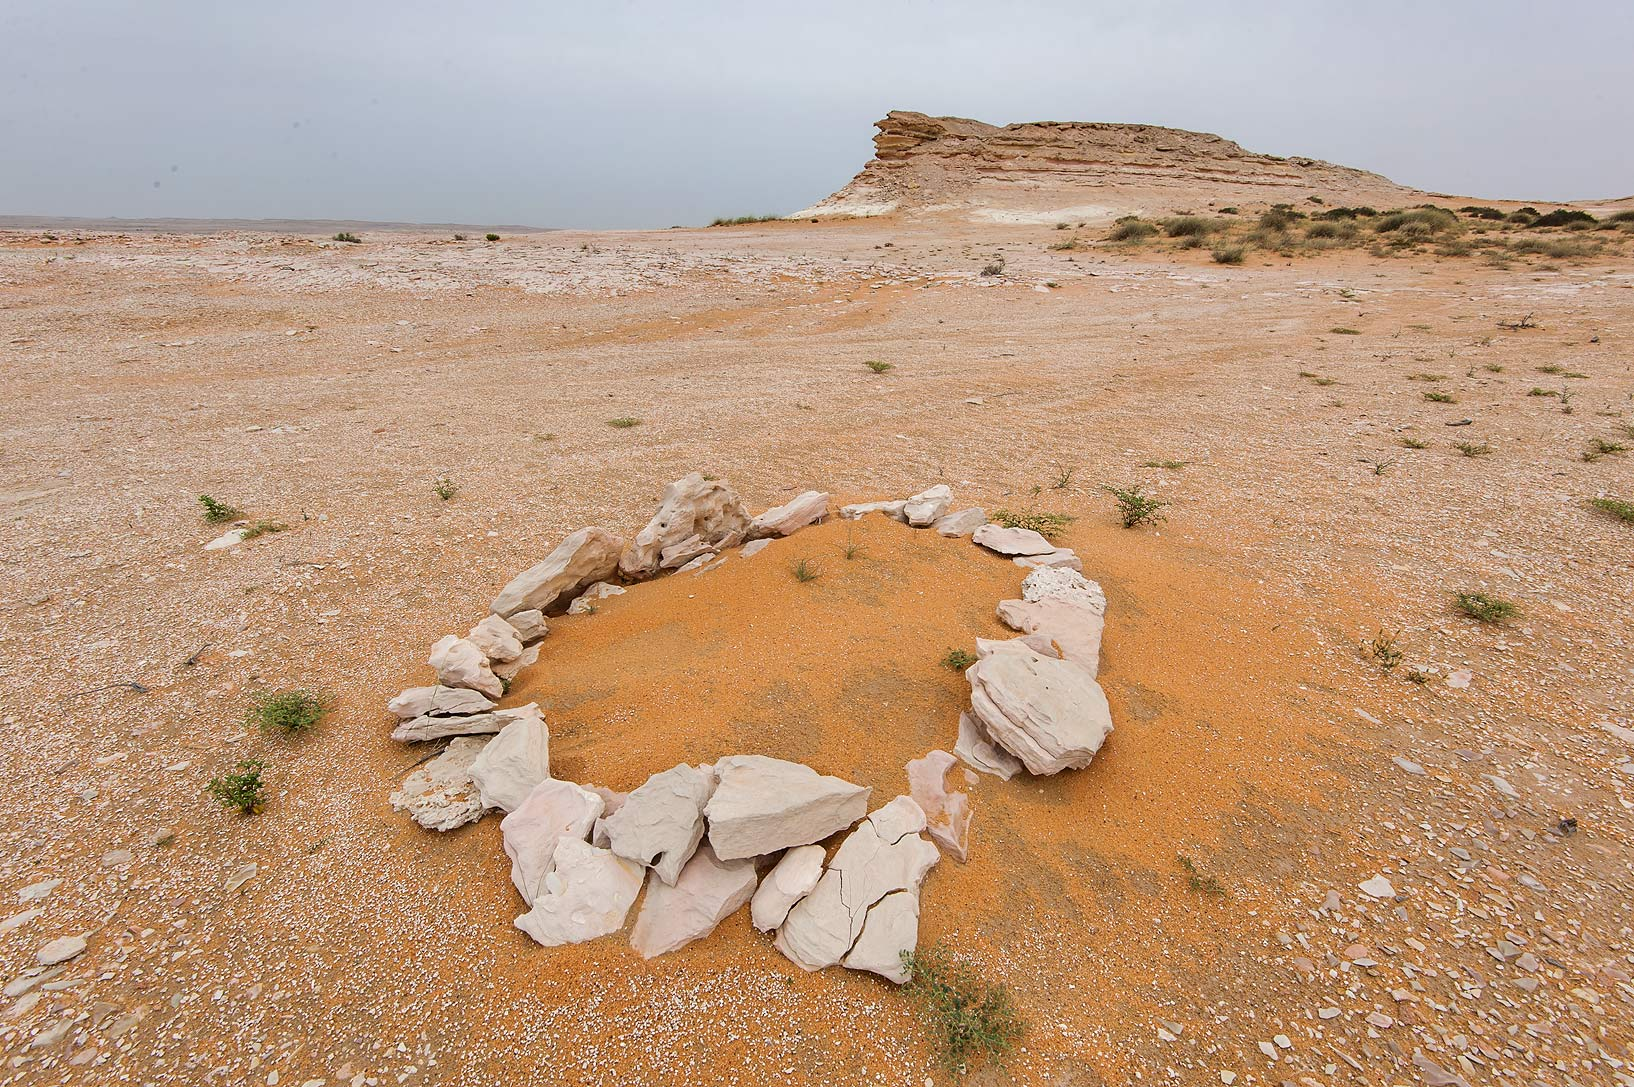 Rock circle on a plateau at the foot of a hill in...Reserve near Abu Samra. Southern Qatar